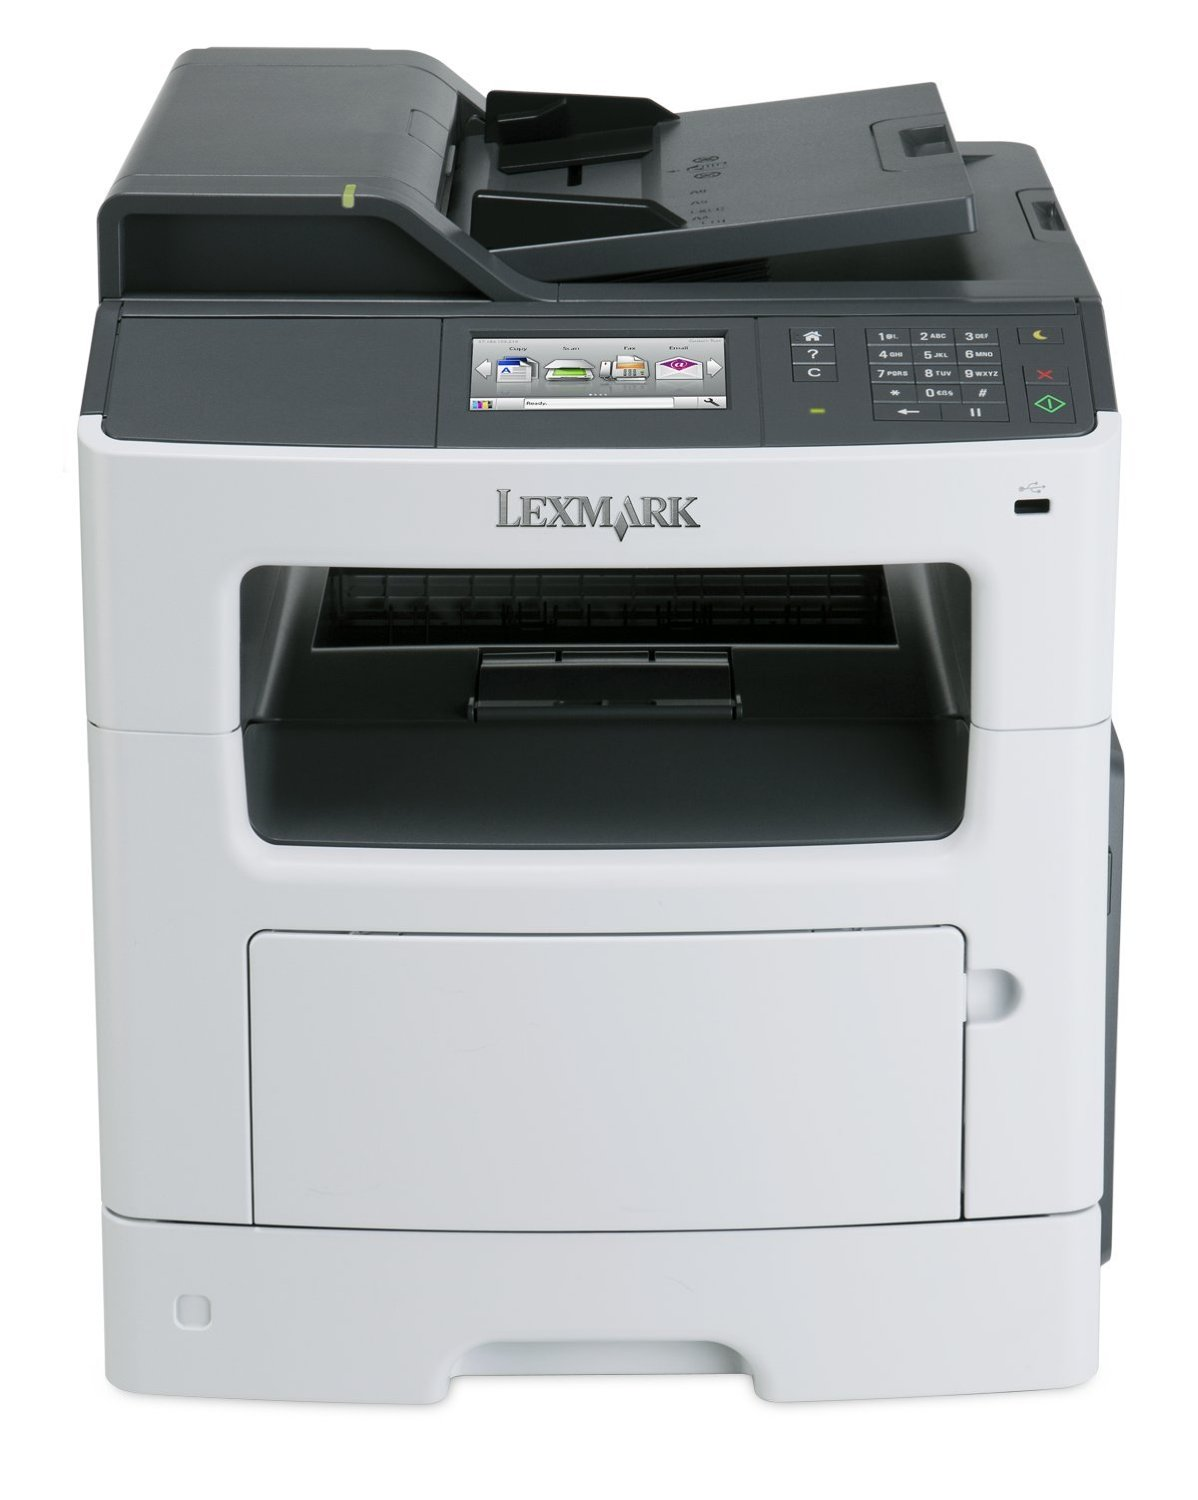 Lexmark mx410de scan to pdf